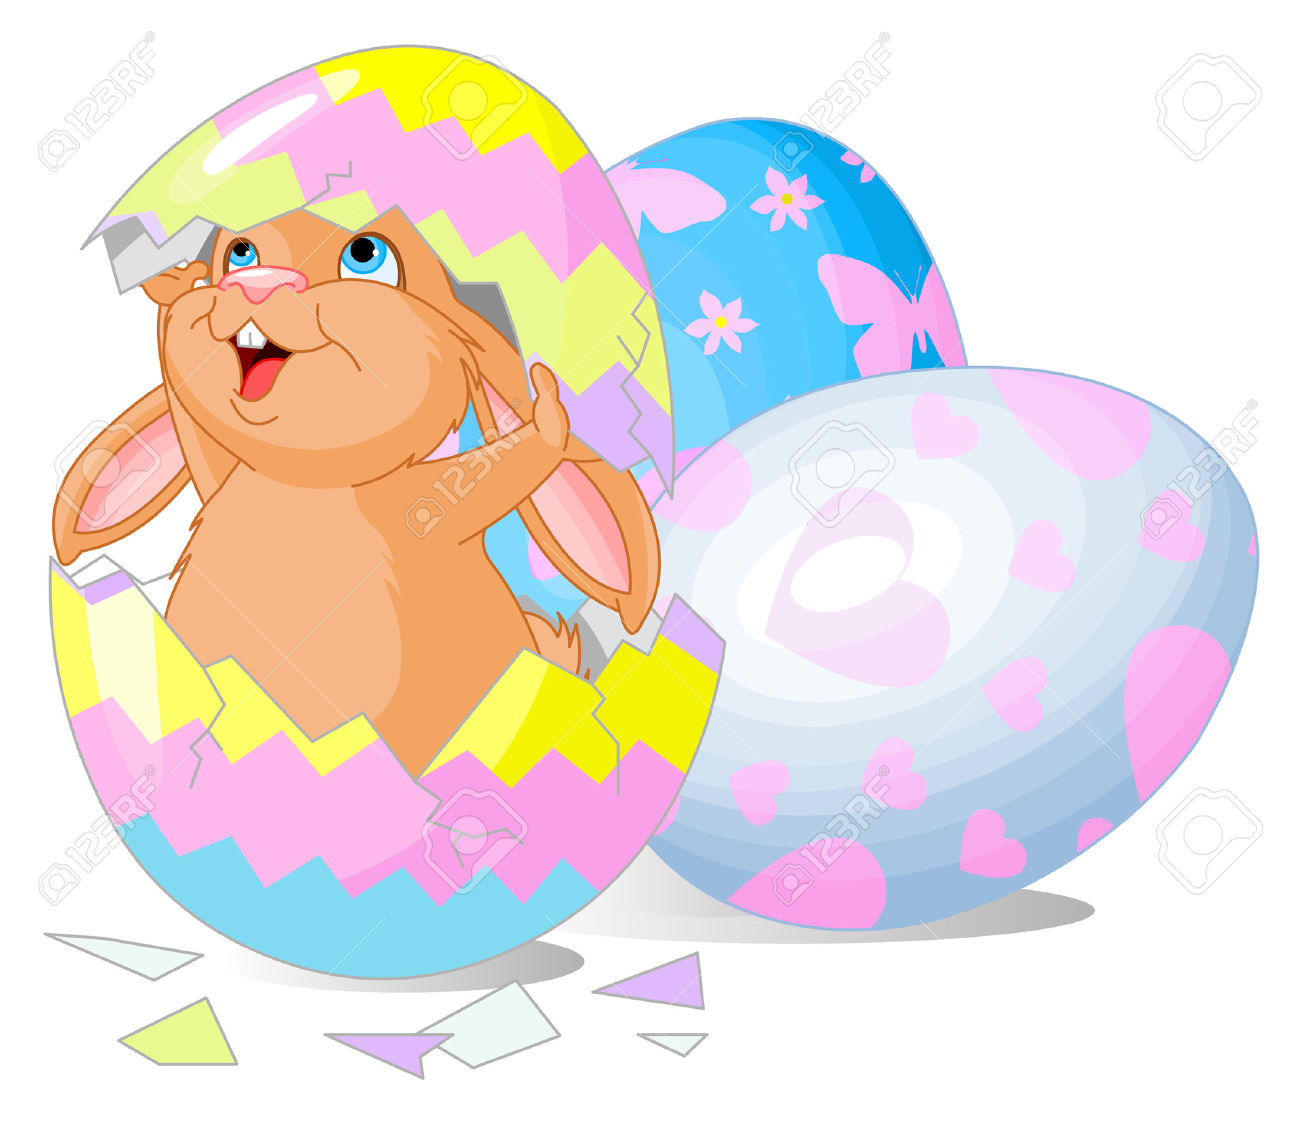 Easter bunny clipart with cracked egg picture library Easter Bunny Jumping Out From Broken Egg Royalty Free Cliparts ... picture library